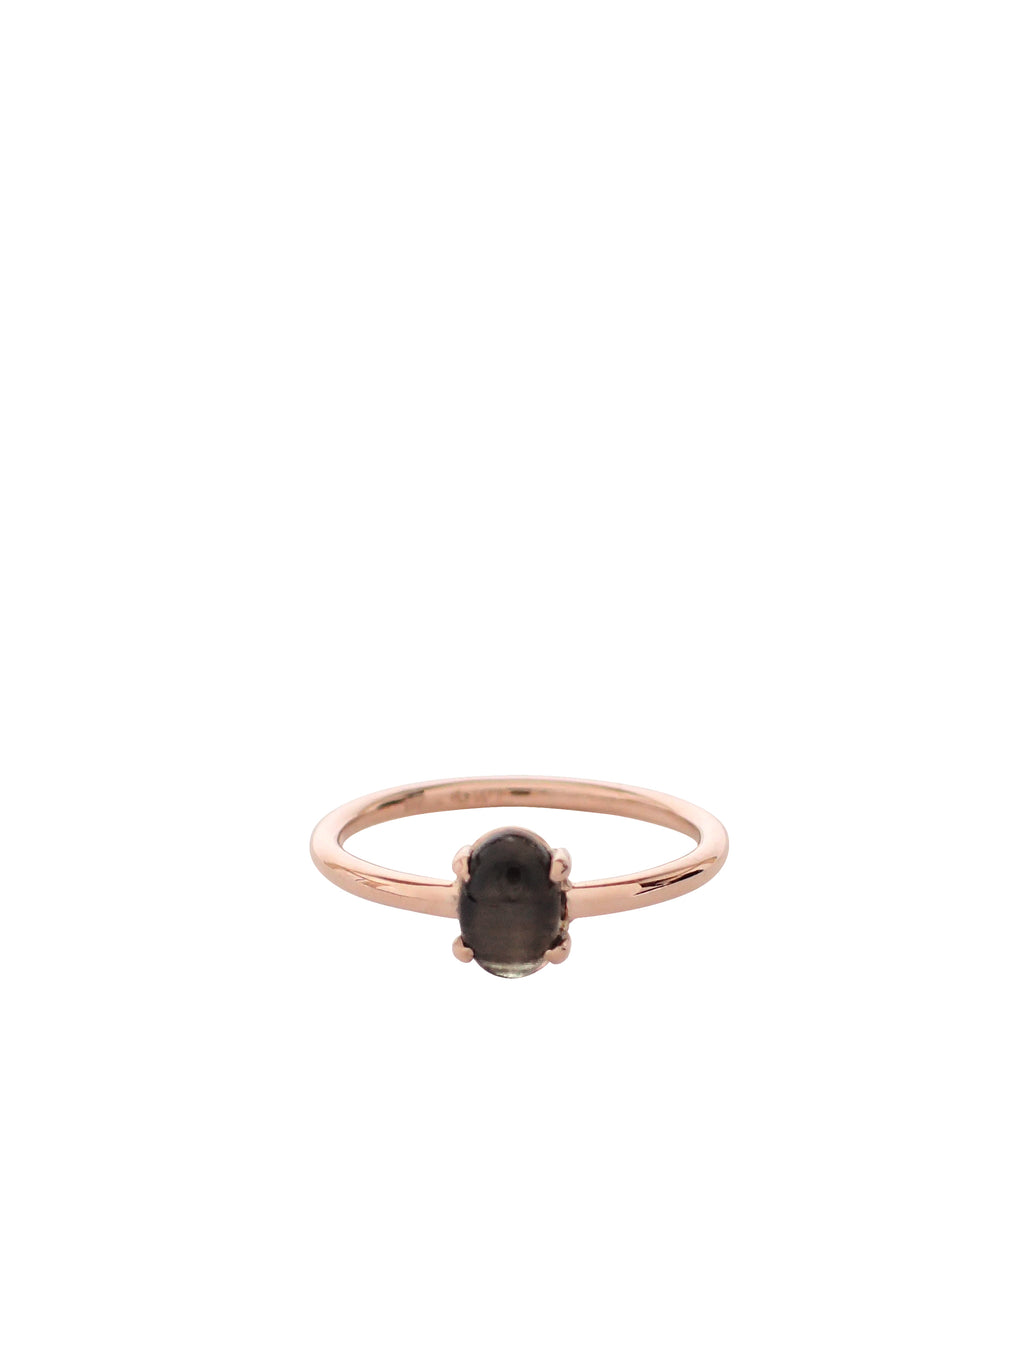 Fulton Ring / Rose Gold With Black Star Sapphire